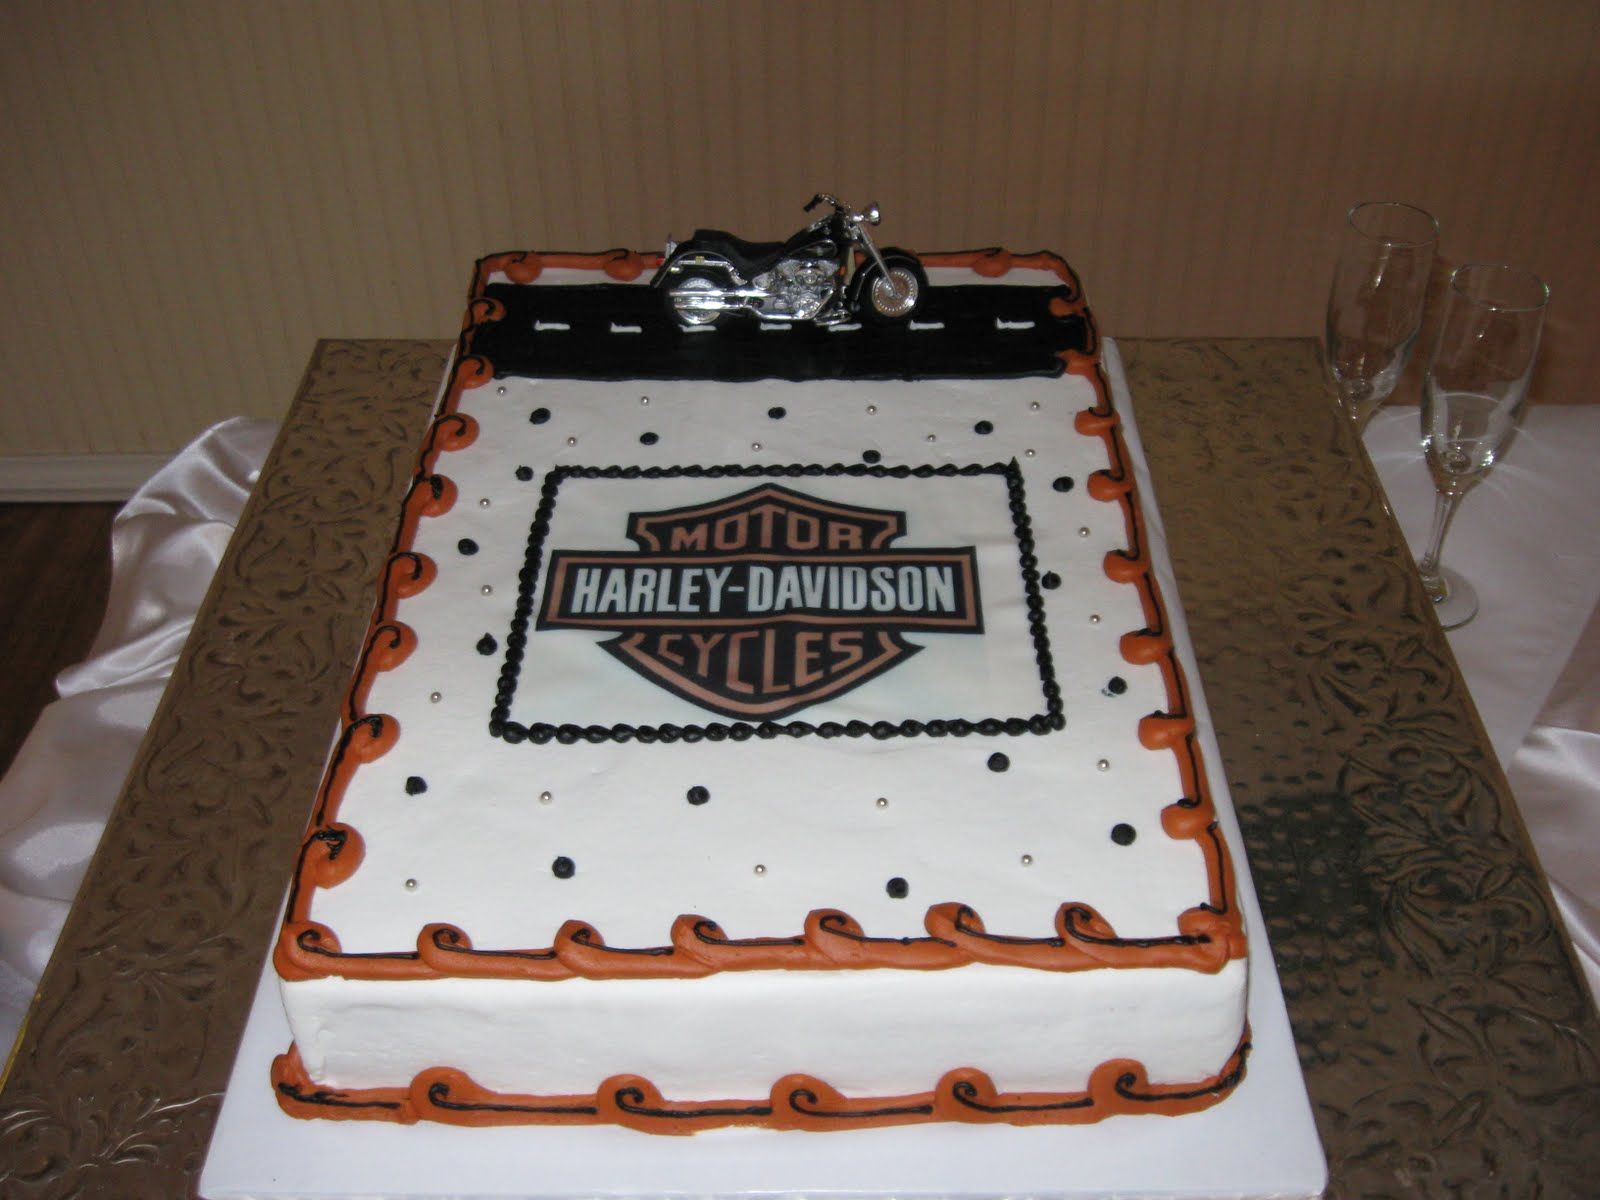 97 best harley wedding ideas images on pinterest | motorcycle